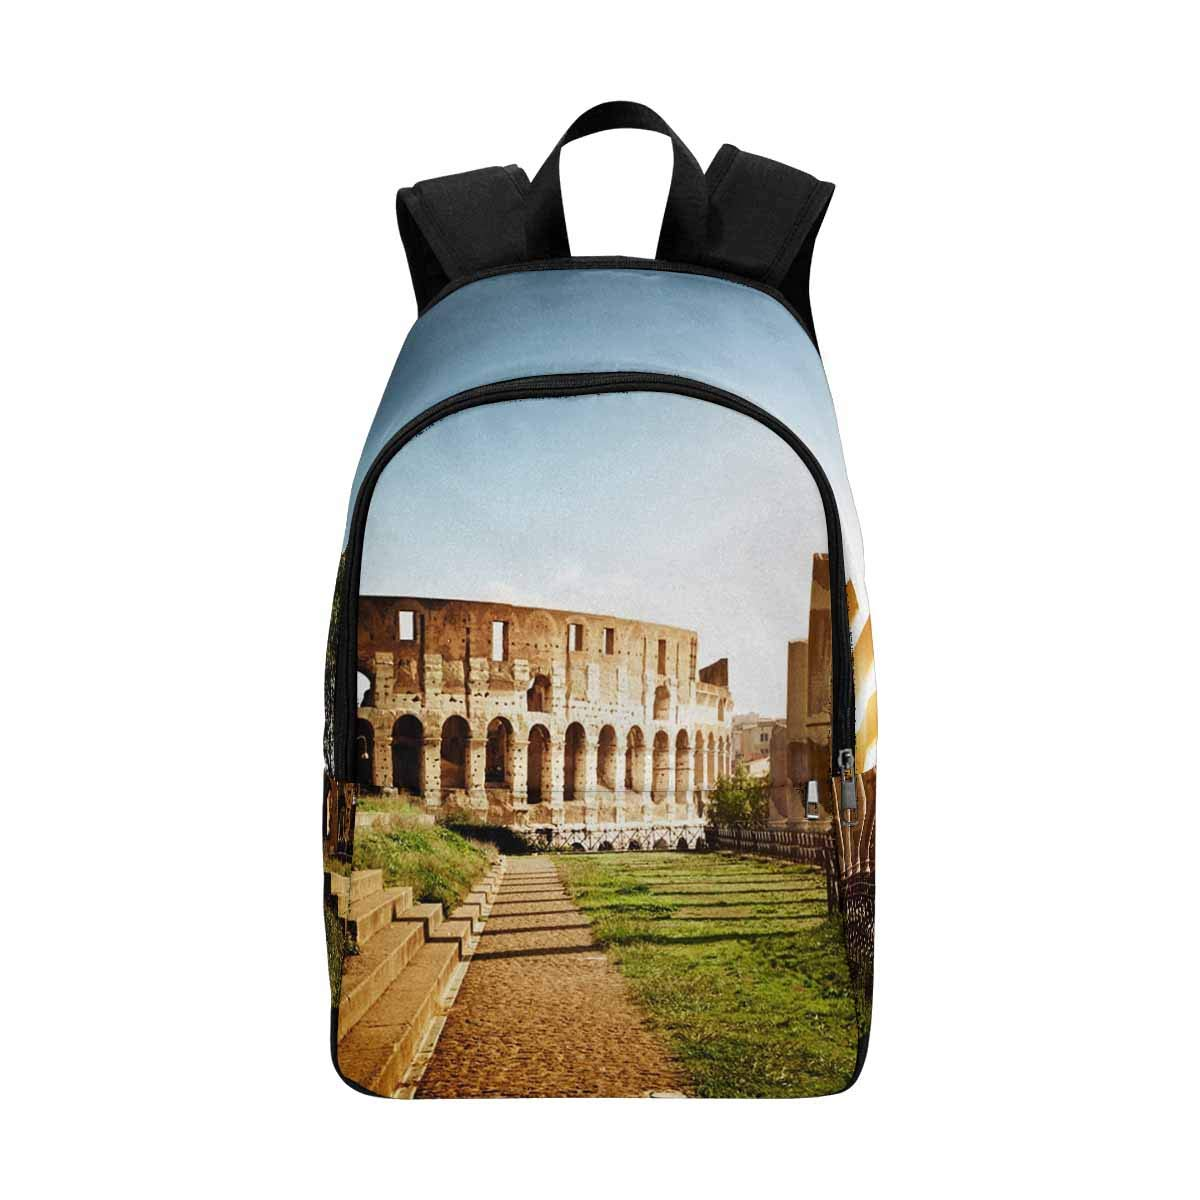 InterestPrint Colosseum in Rome, Italy Casual Backpack Travel Daypack